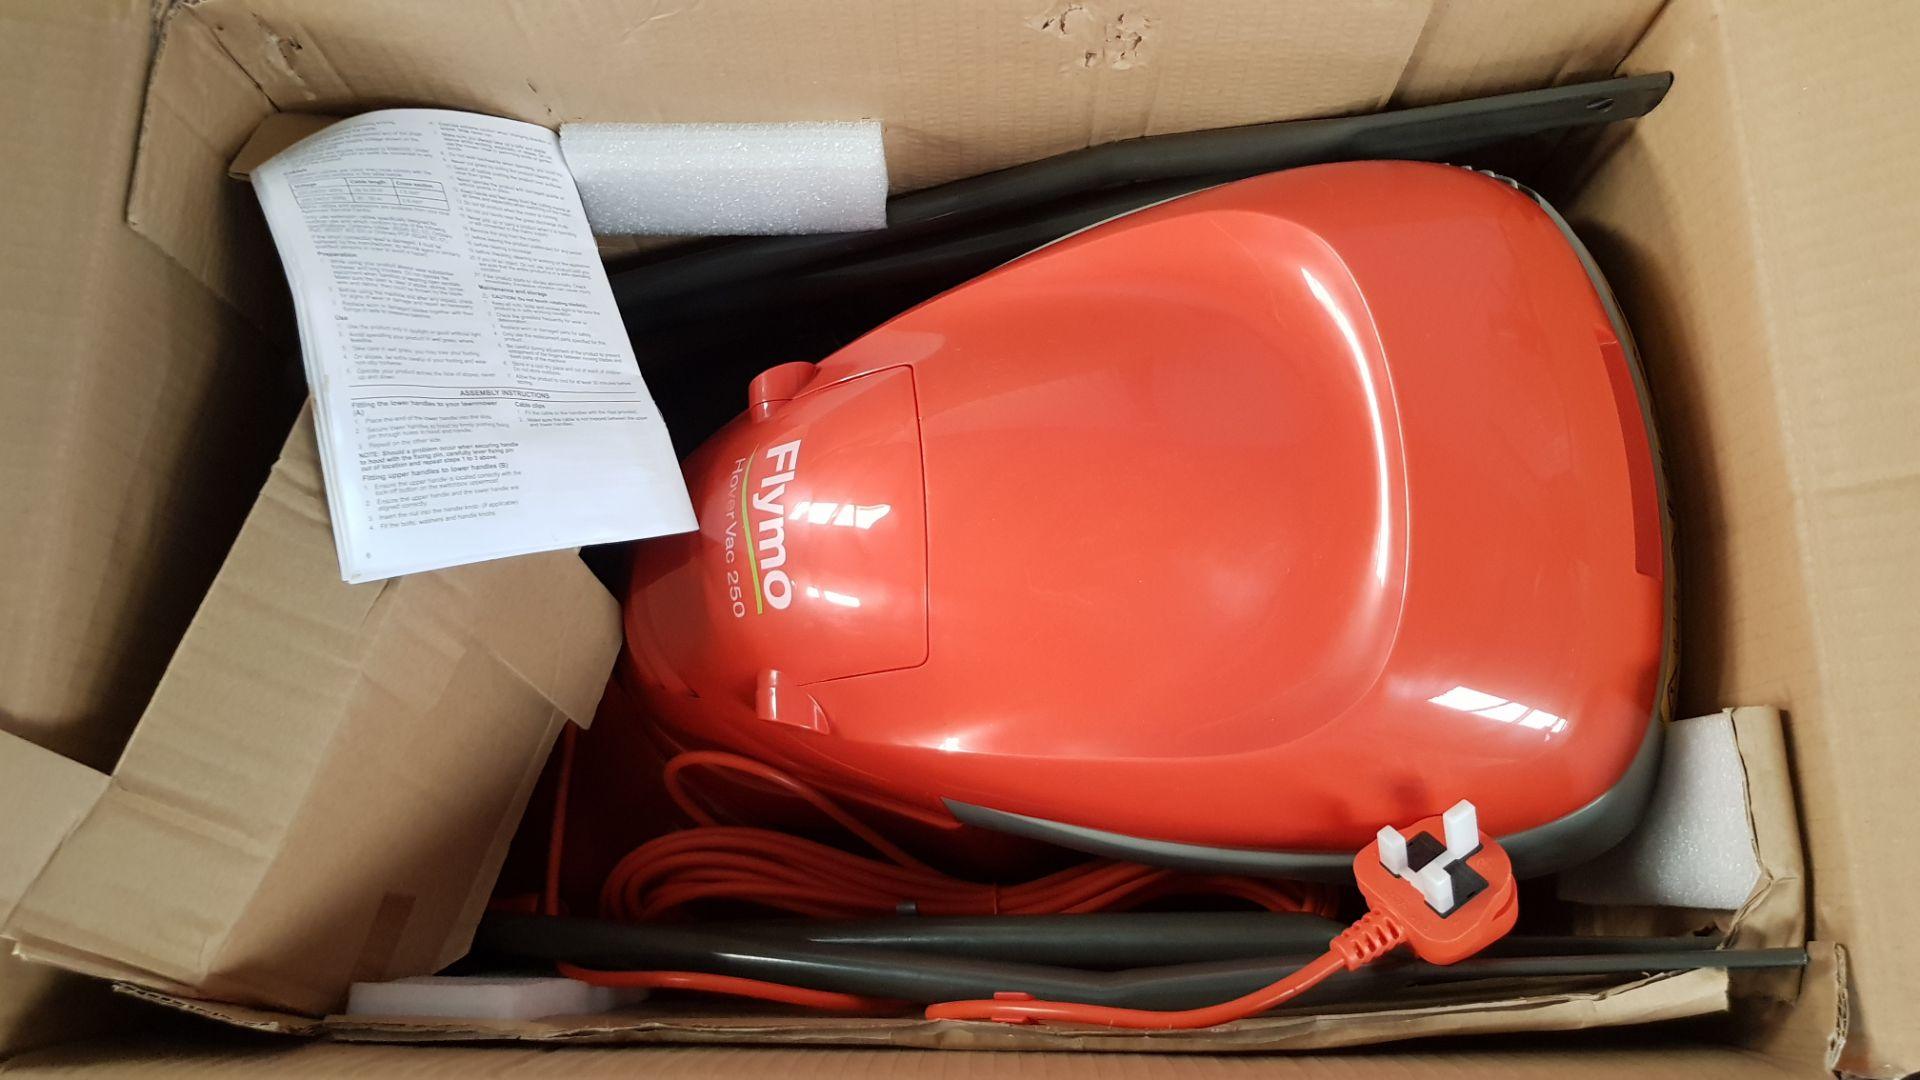 (P2) 1x Flymo HoverVac 250 RRP £80. Unit Appears Clean, Unused & As New. - Image 5 of 5